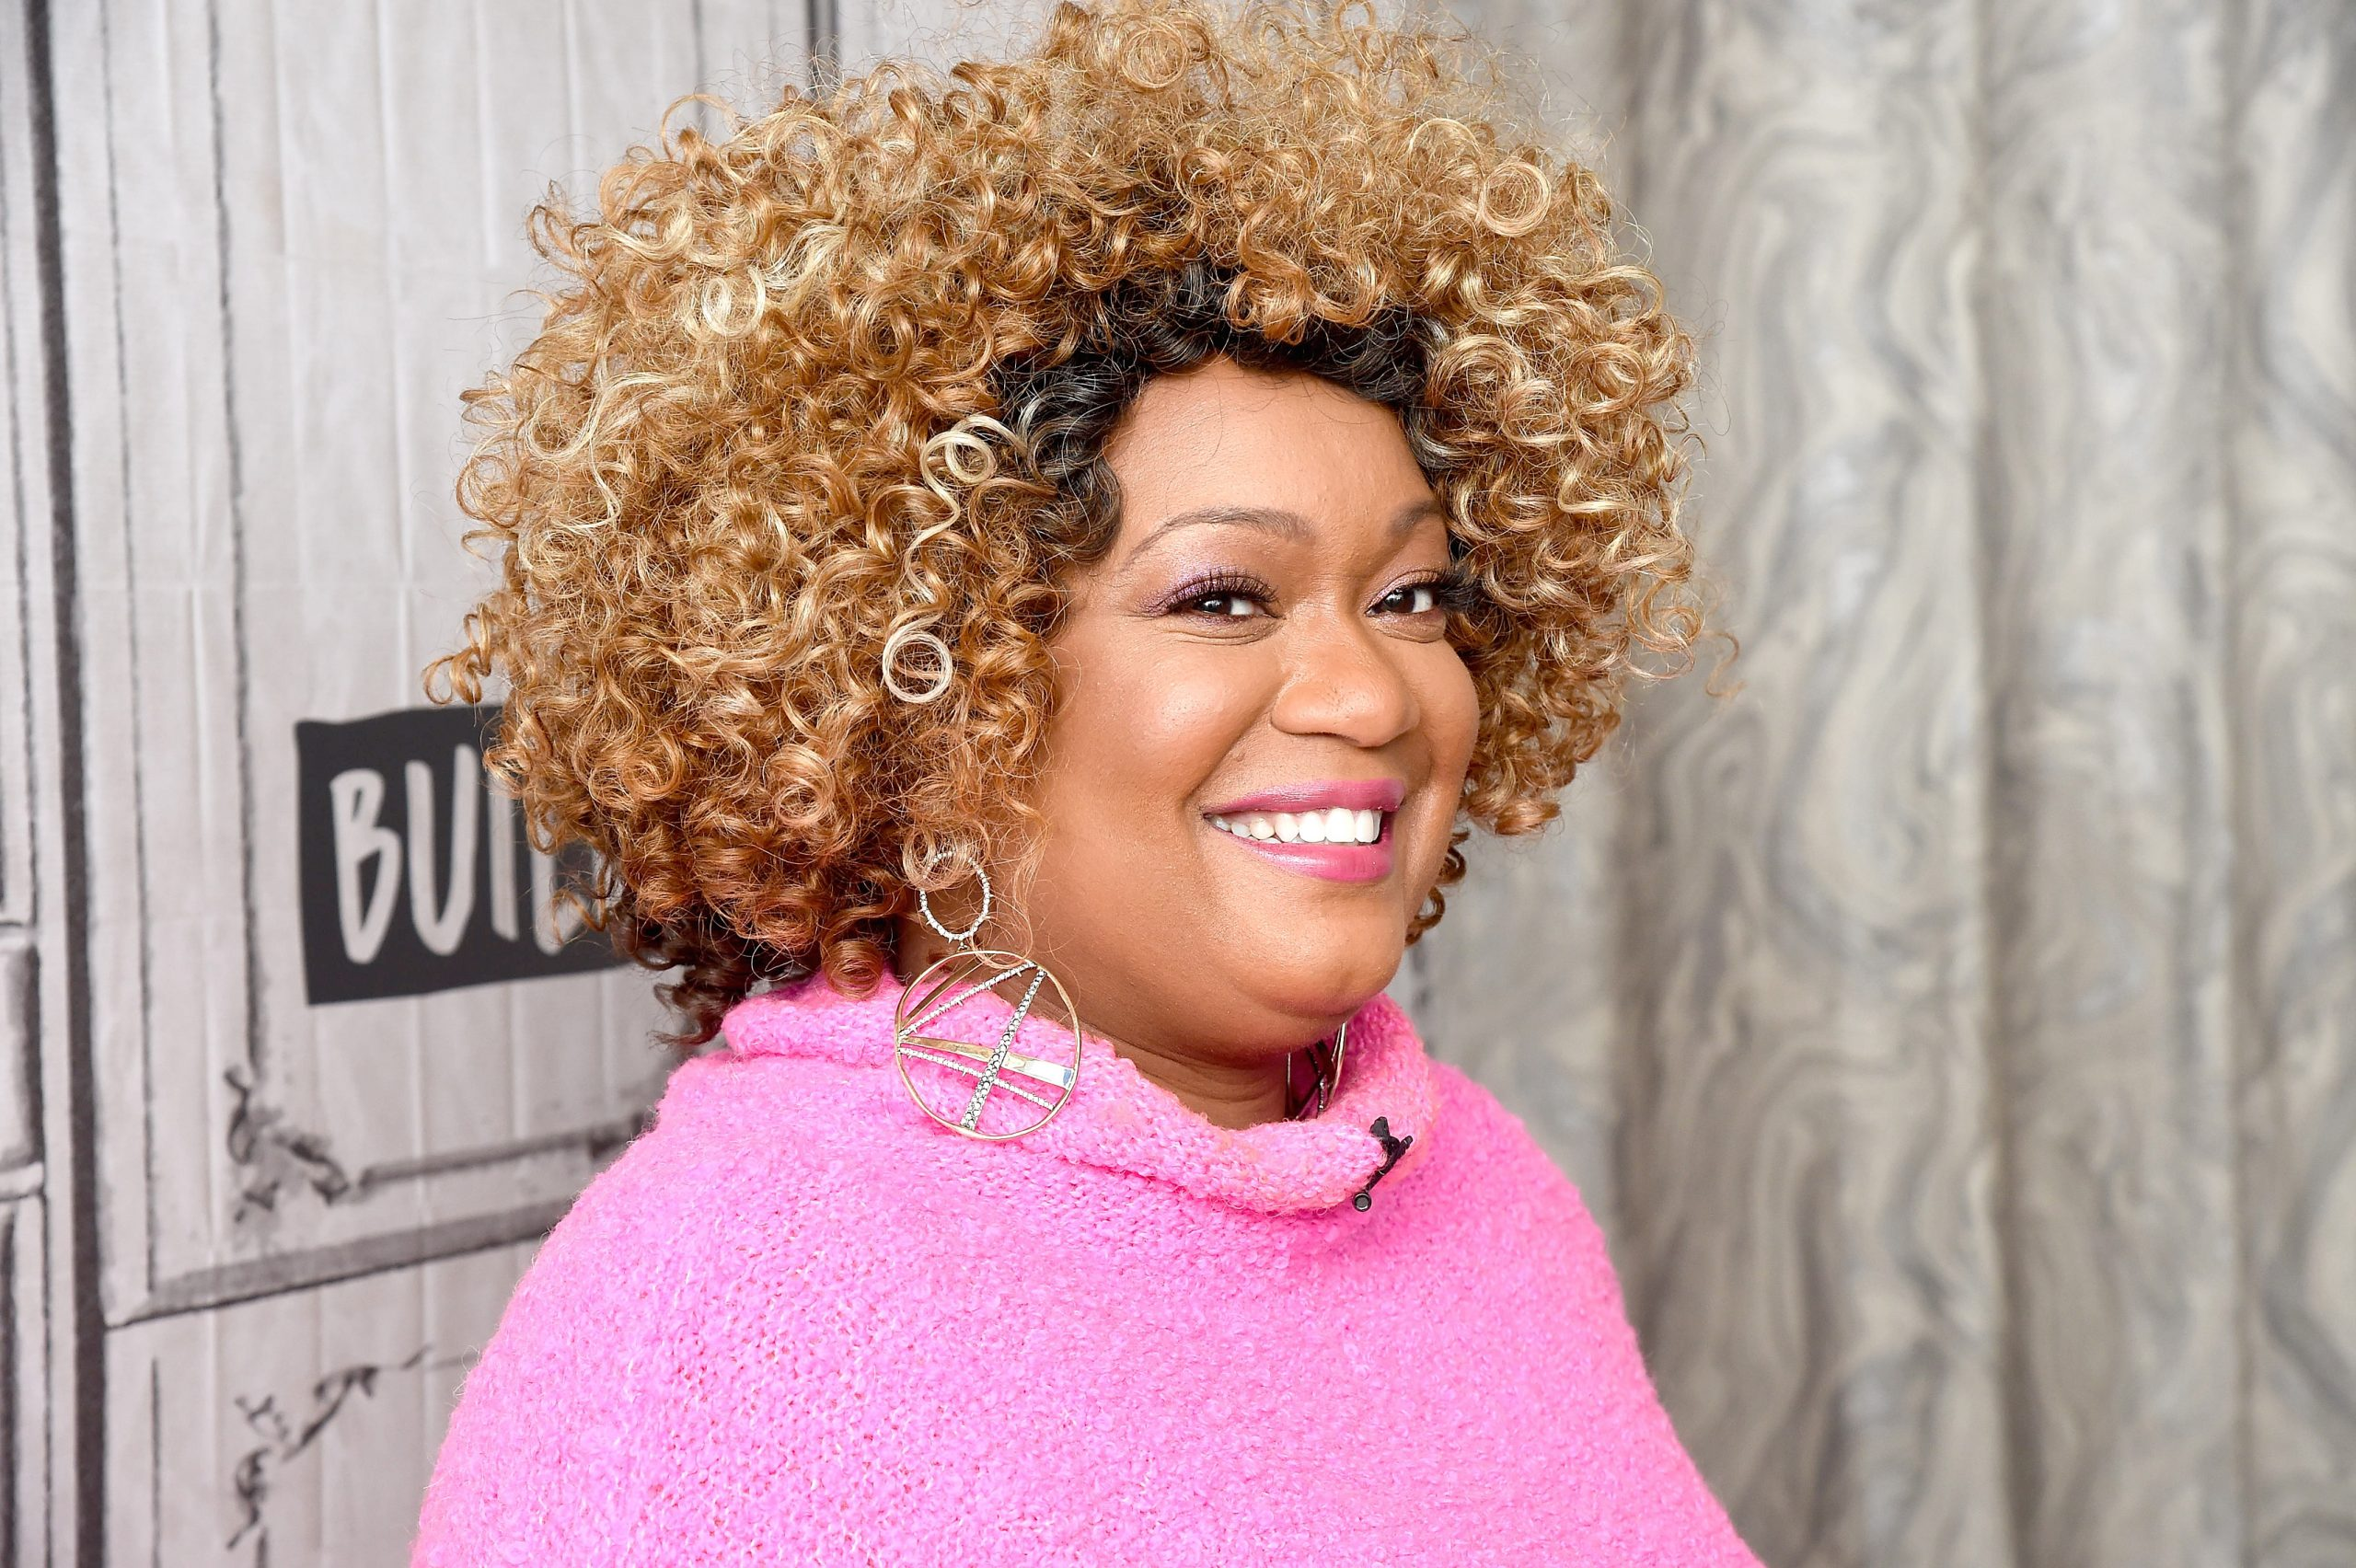 The Kitchen Why Don T Viewers Get To See Sunny Anderson S Home Kitchen